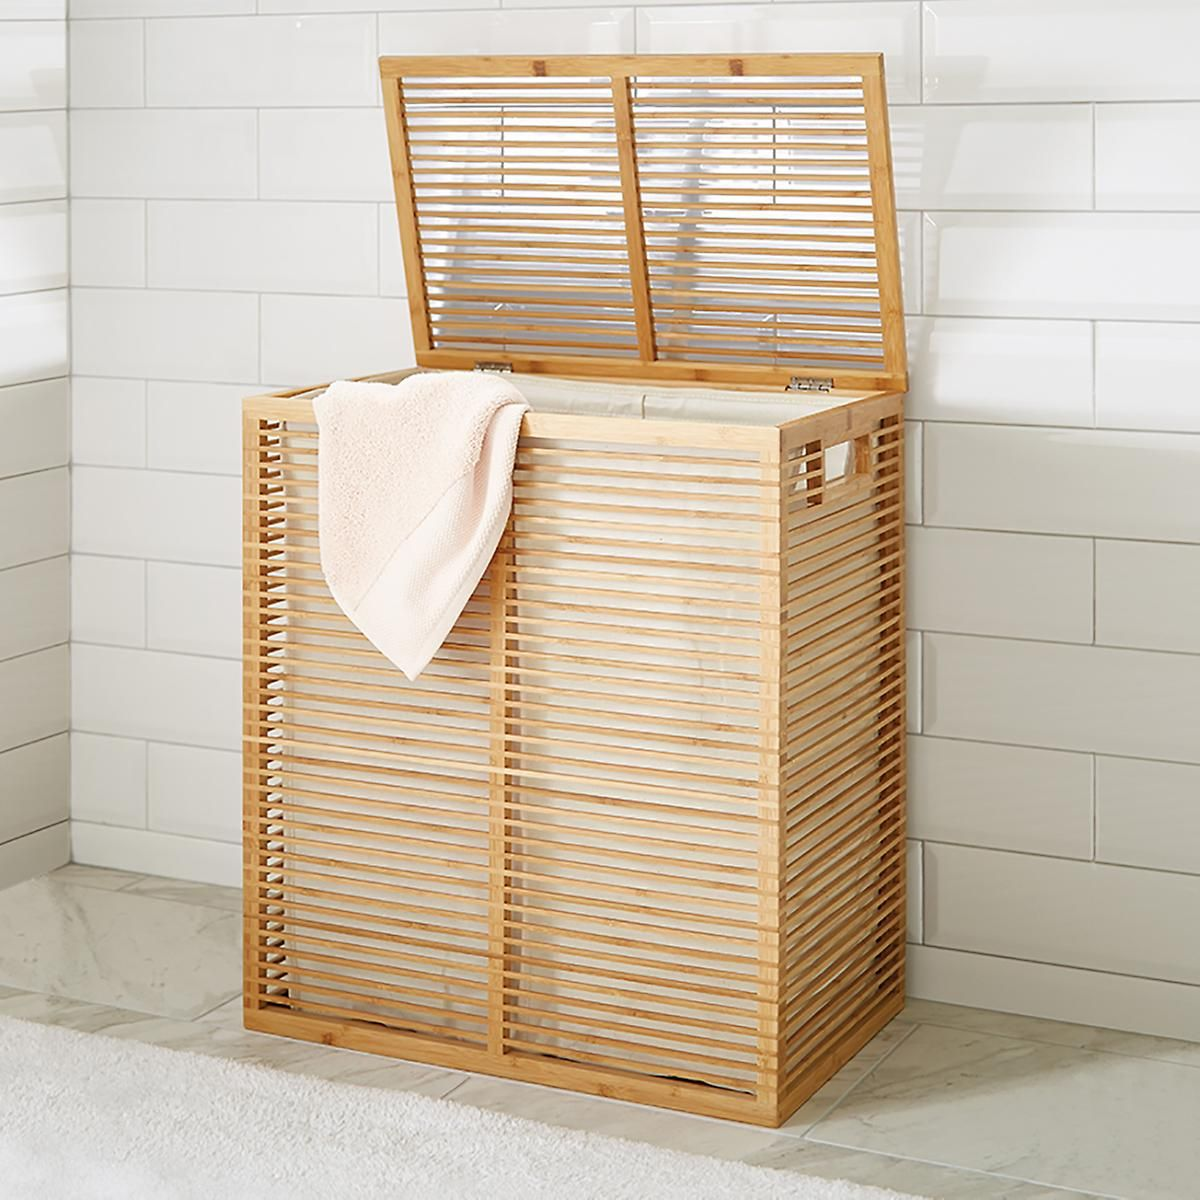 Zen Divided Bamboo Hamper Laundry Hamper Vintage Laundry Room Vintage Laundry Room Decor